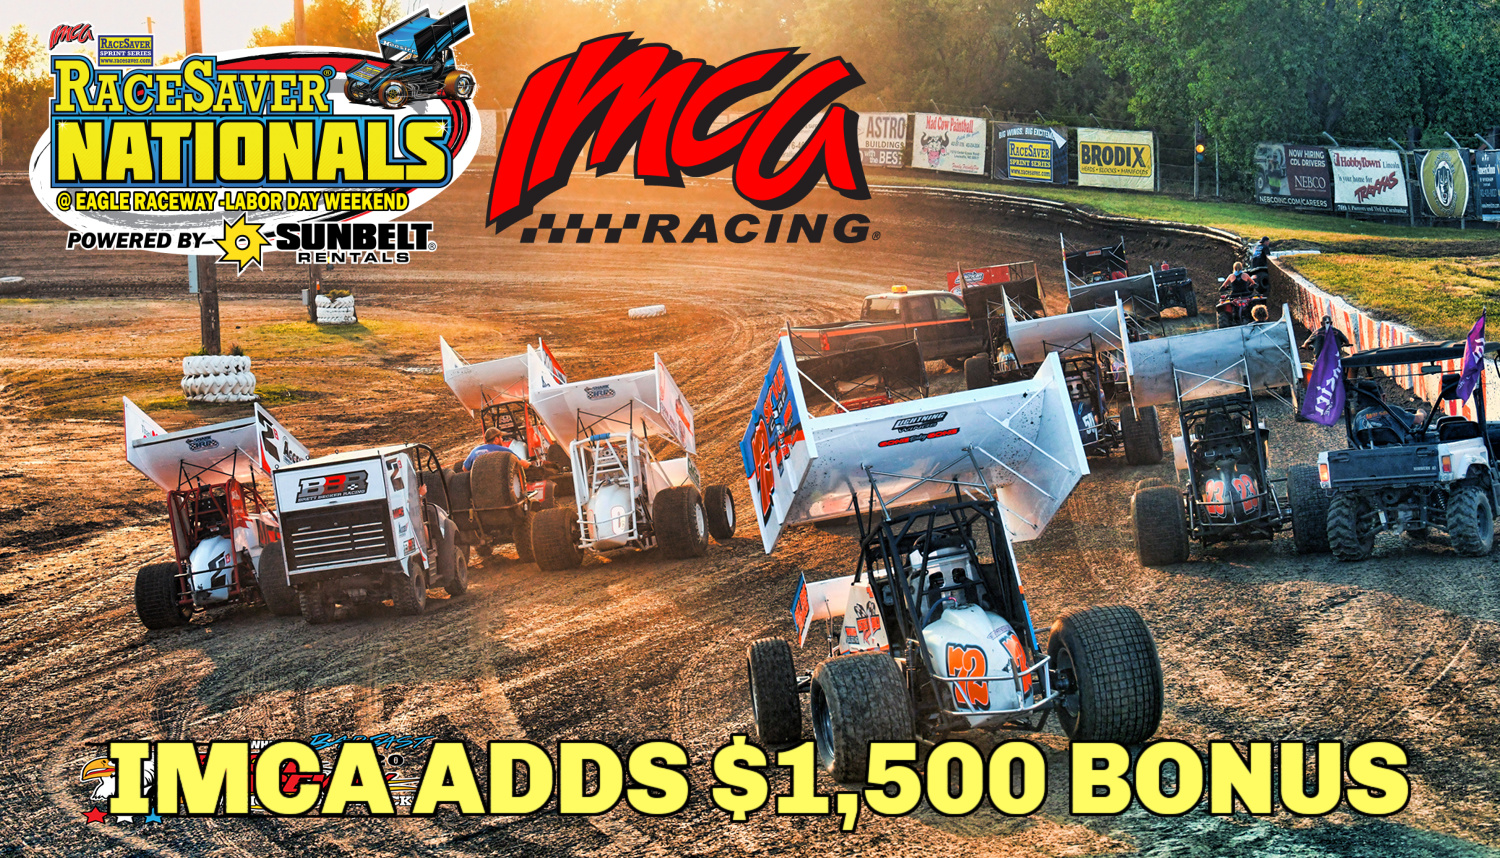 IMCA TO GIVE $1,500 BONUS to RaceSaver Nationals Champion at Eagle Raceway Labor Day weekend